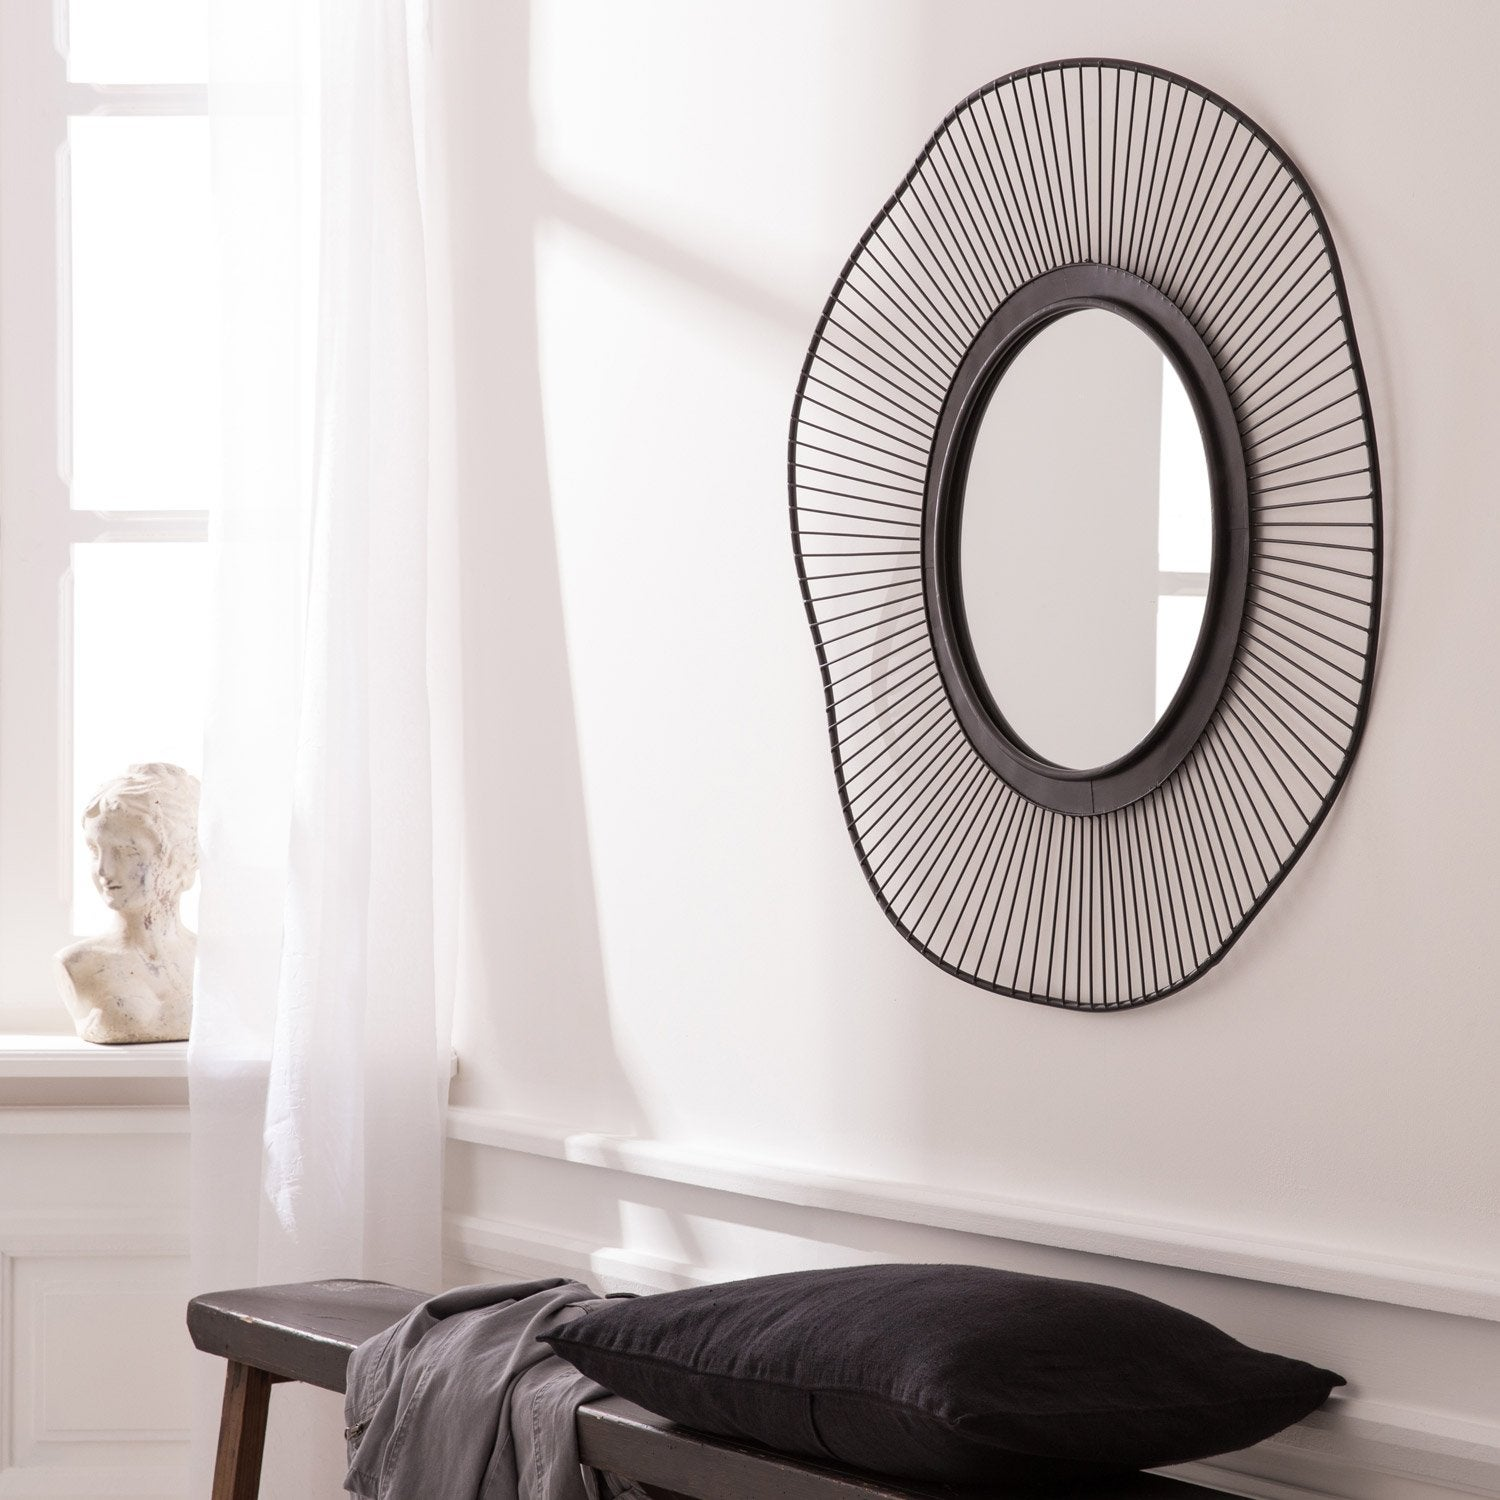 grand miroir rond design 54758 miroir id es. Black Bedroom Furniture Sets. Home Design Ideas